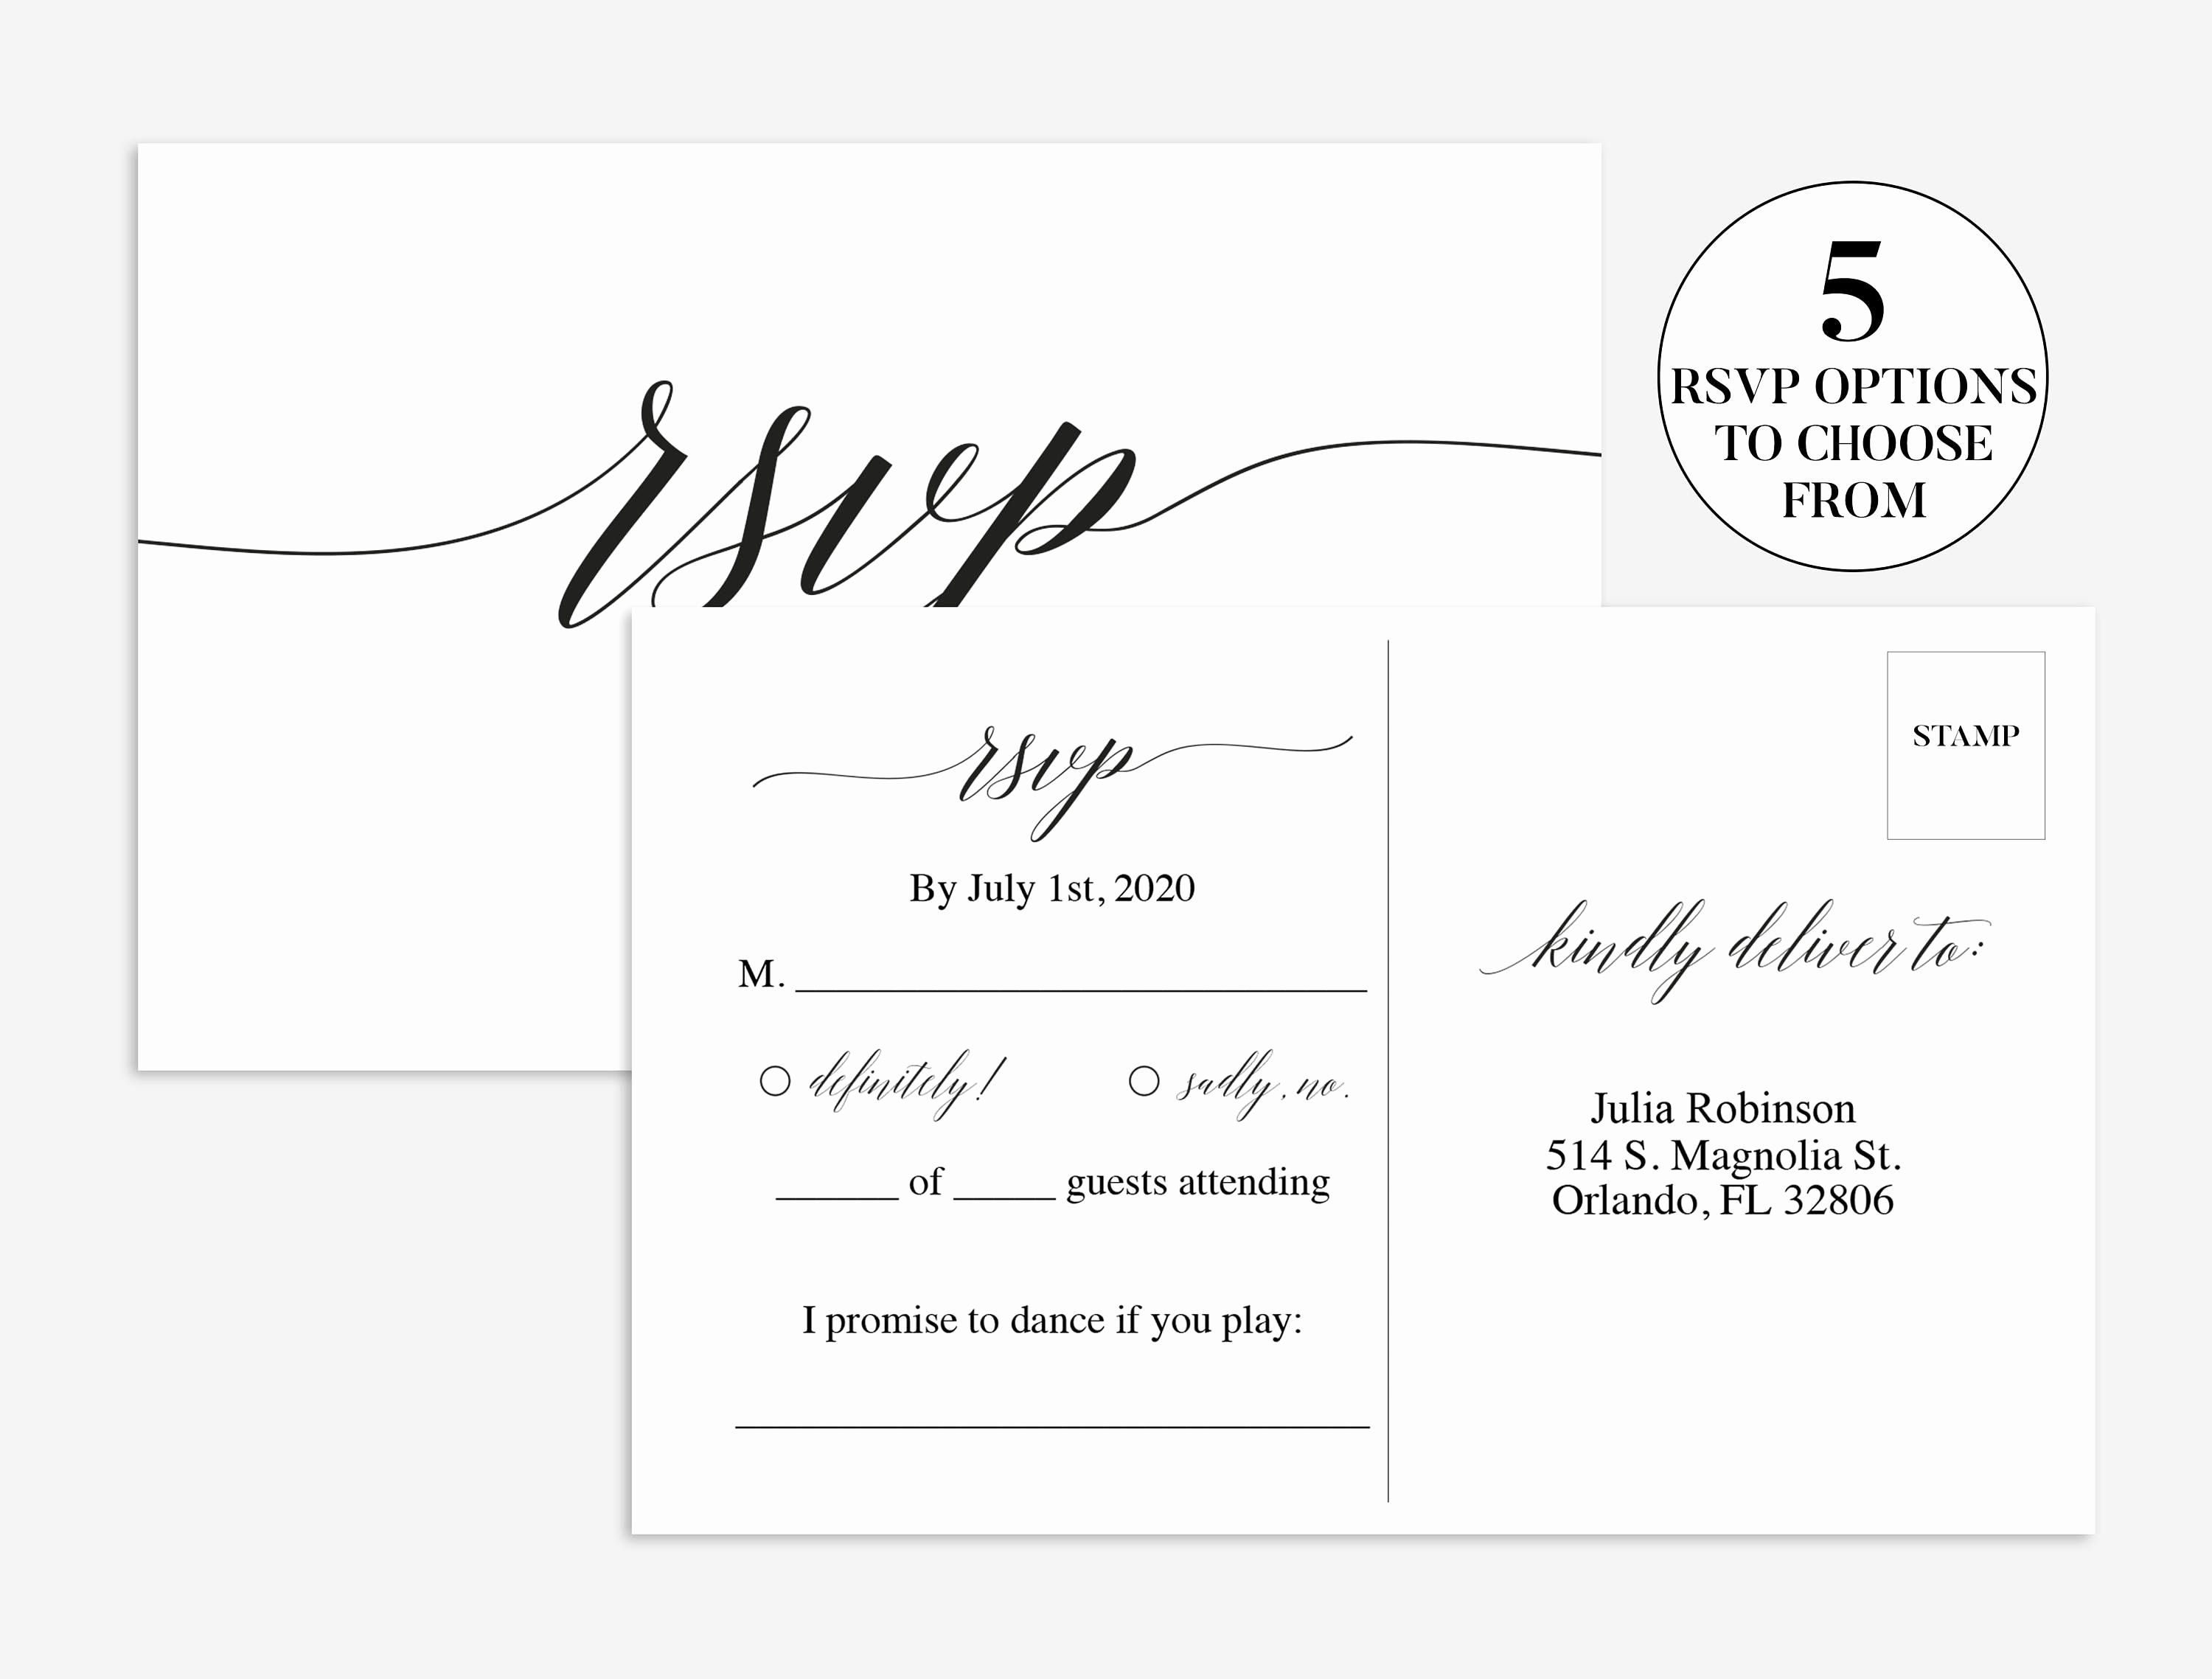 Wedding Rsvp Cards Template New Wedding Rsvp Card Wedding Rsvp Template